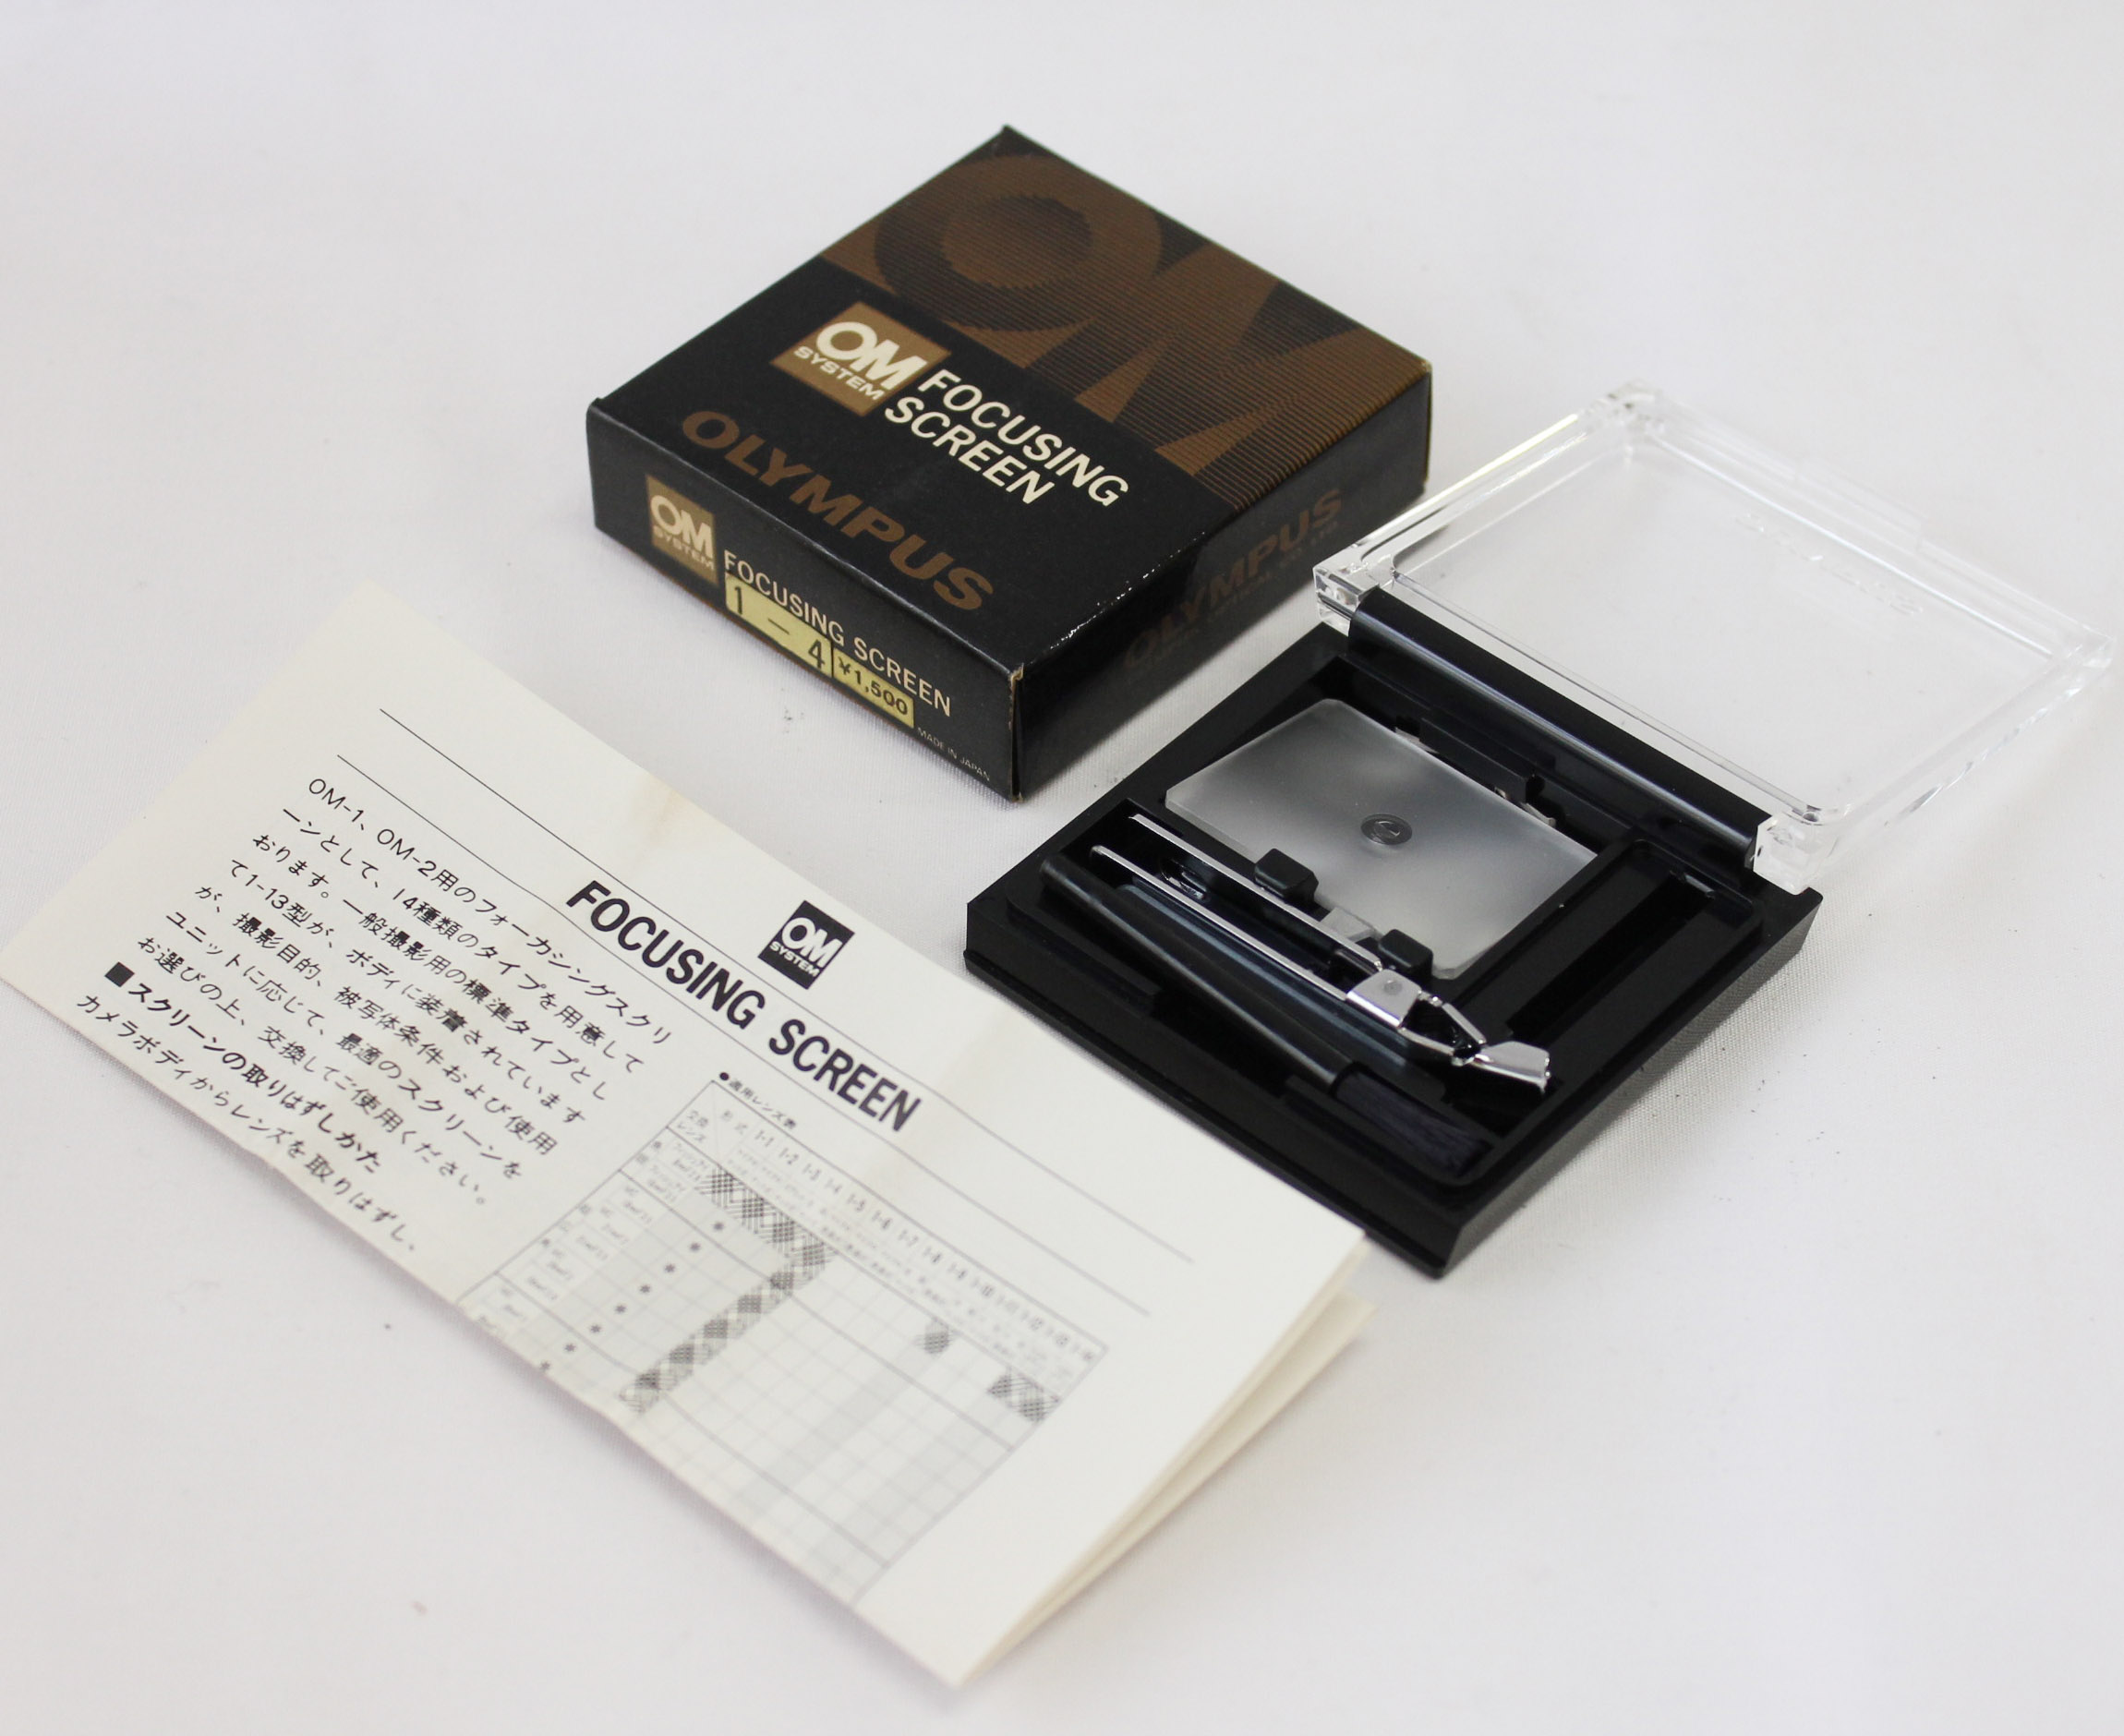 Japan Used Camera Shop | Olympus OM System Focusing Screen Type 1-13 (Microprism / Split Matte) in Box for OM-1, OM-2 from Japan